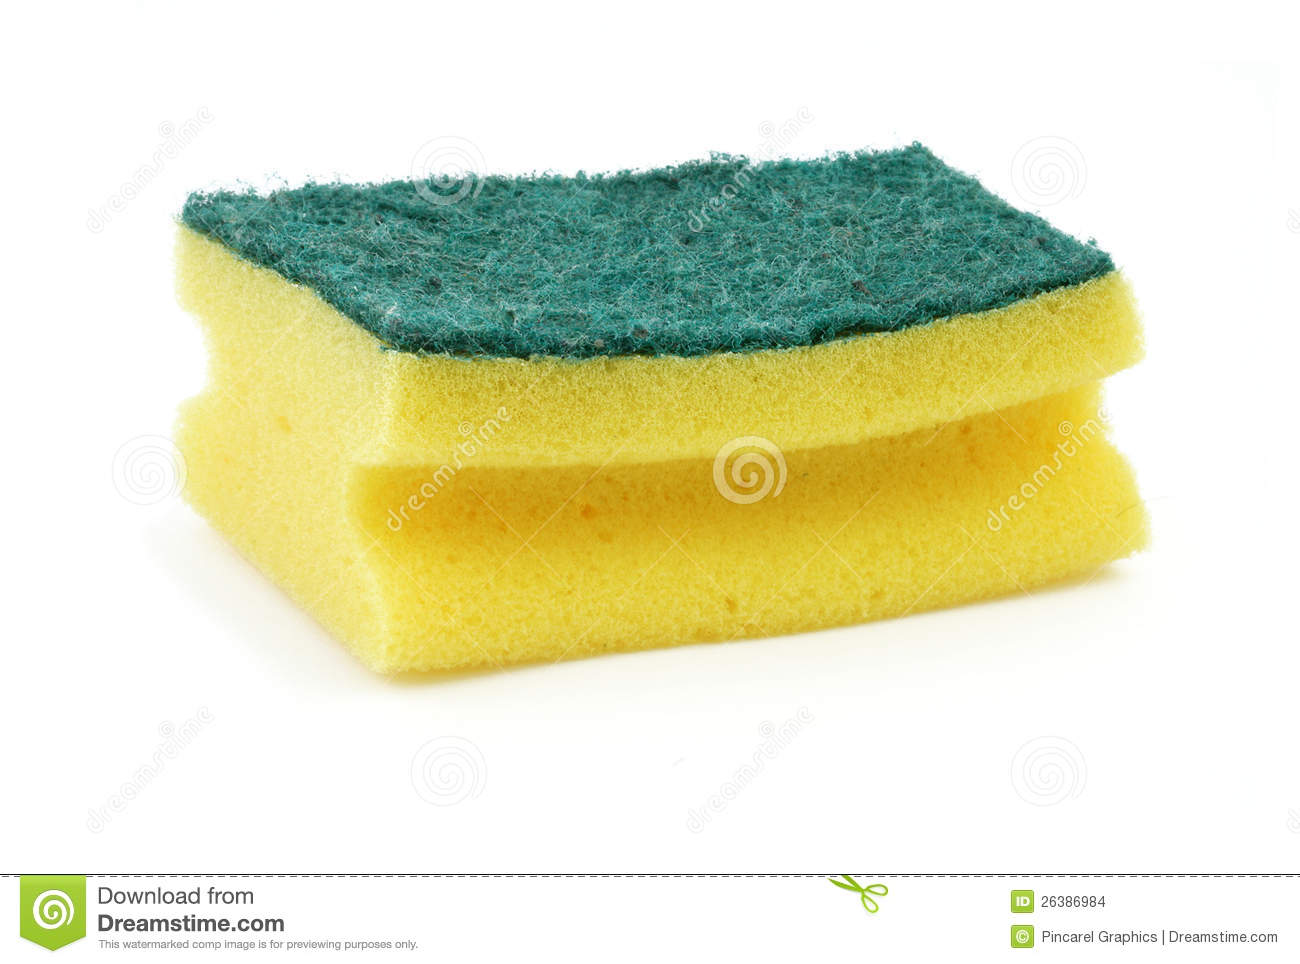 Dish Washing Sponge Stock Images - Image: 26386984